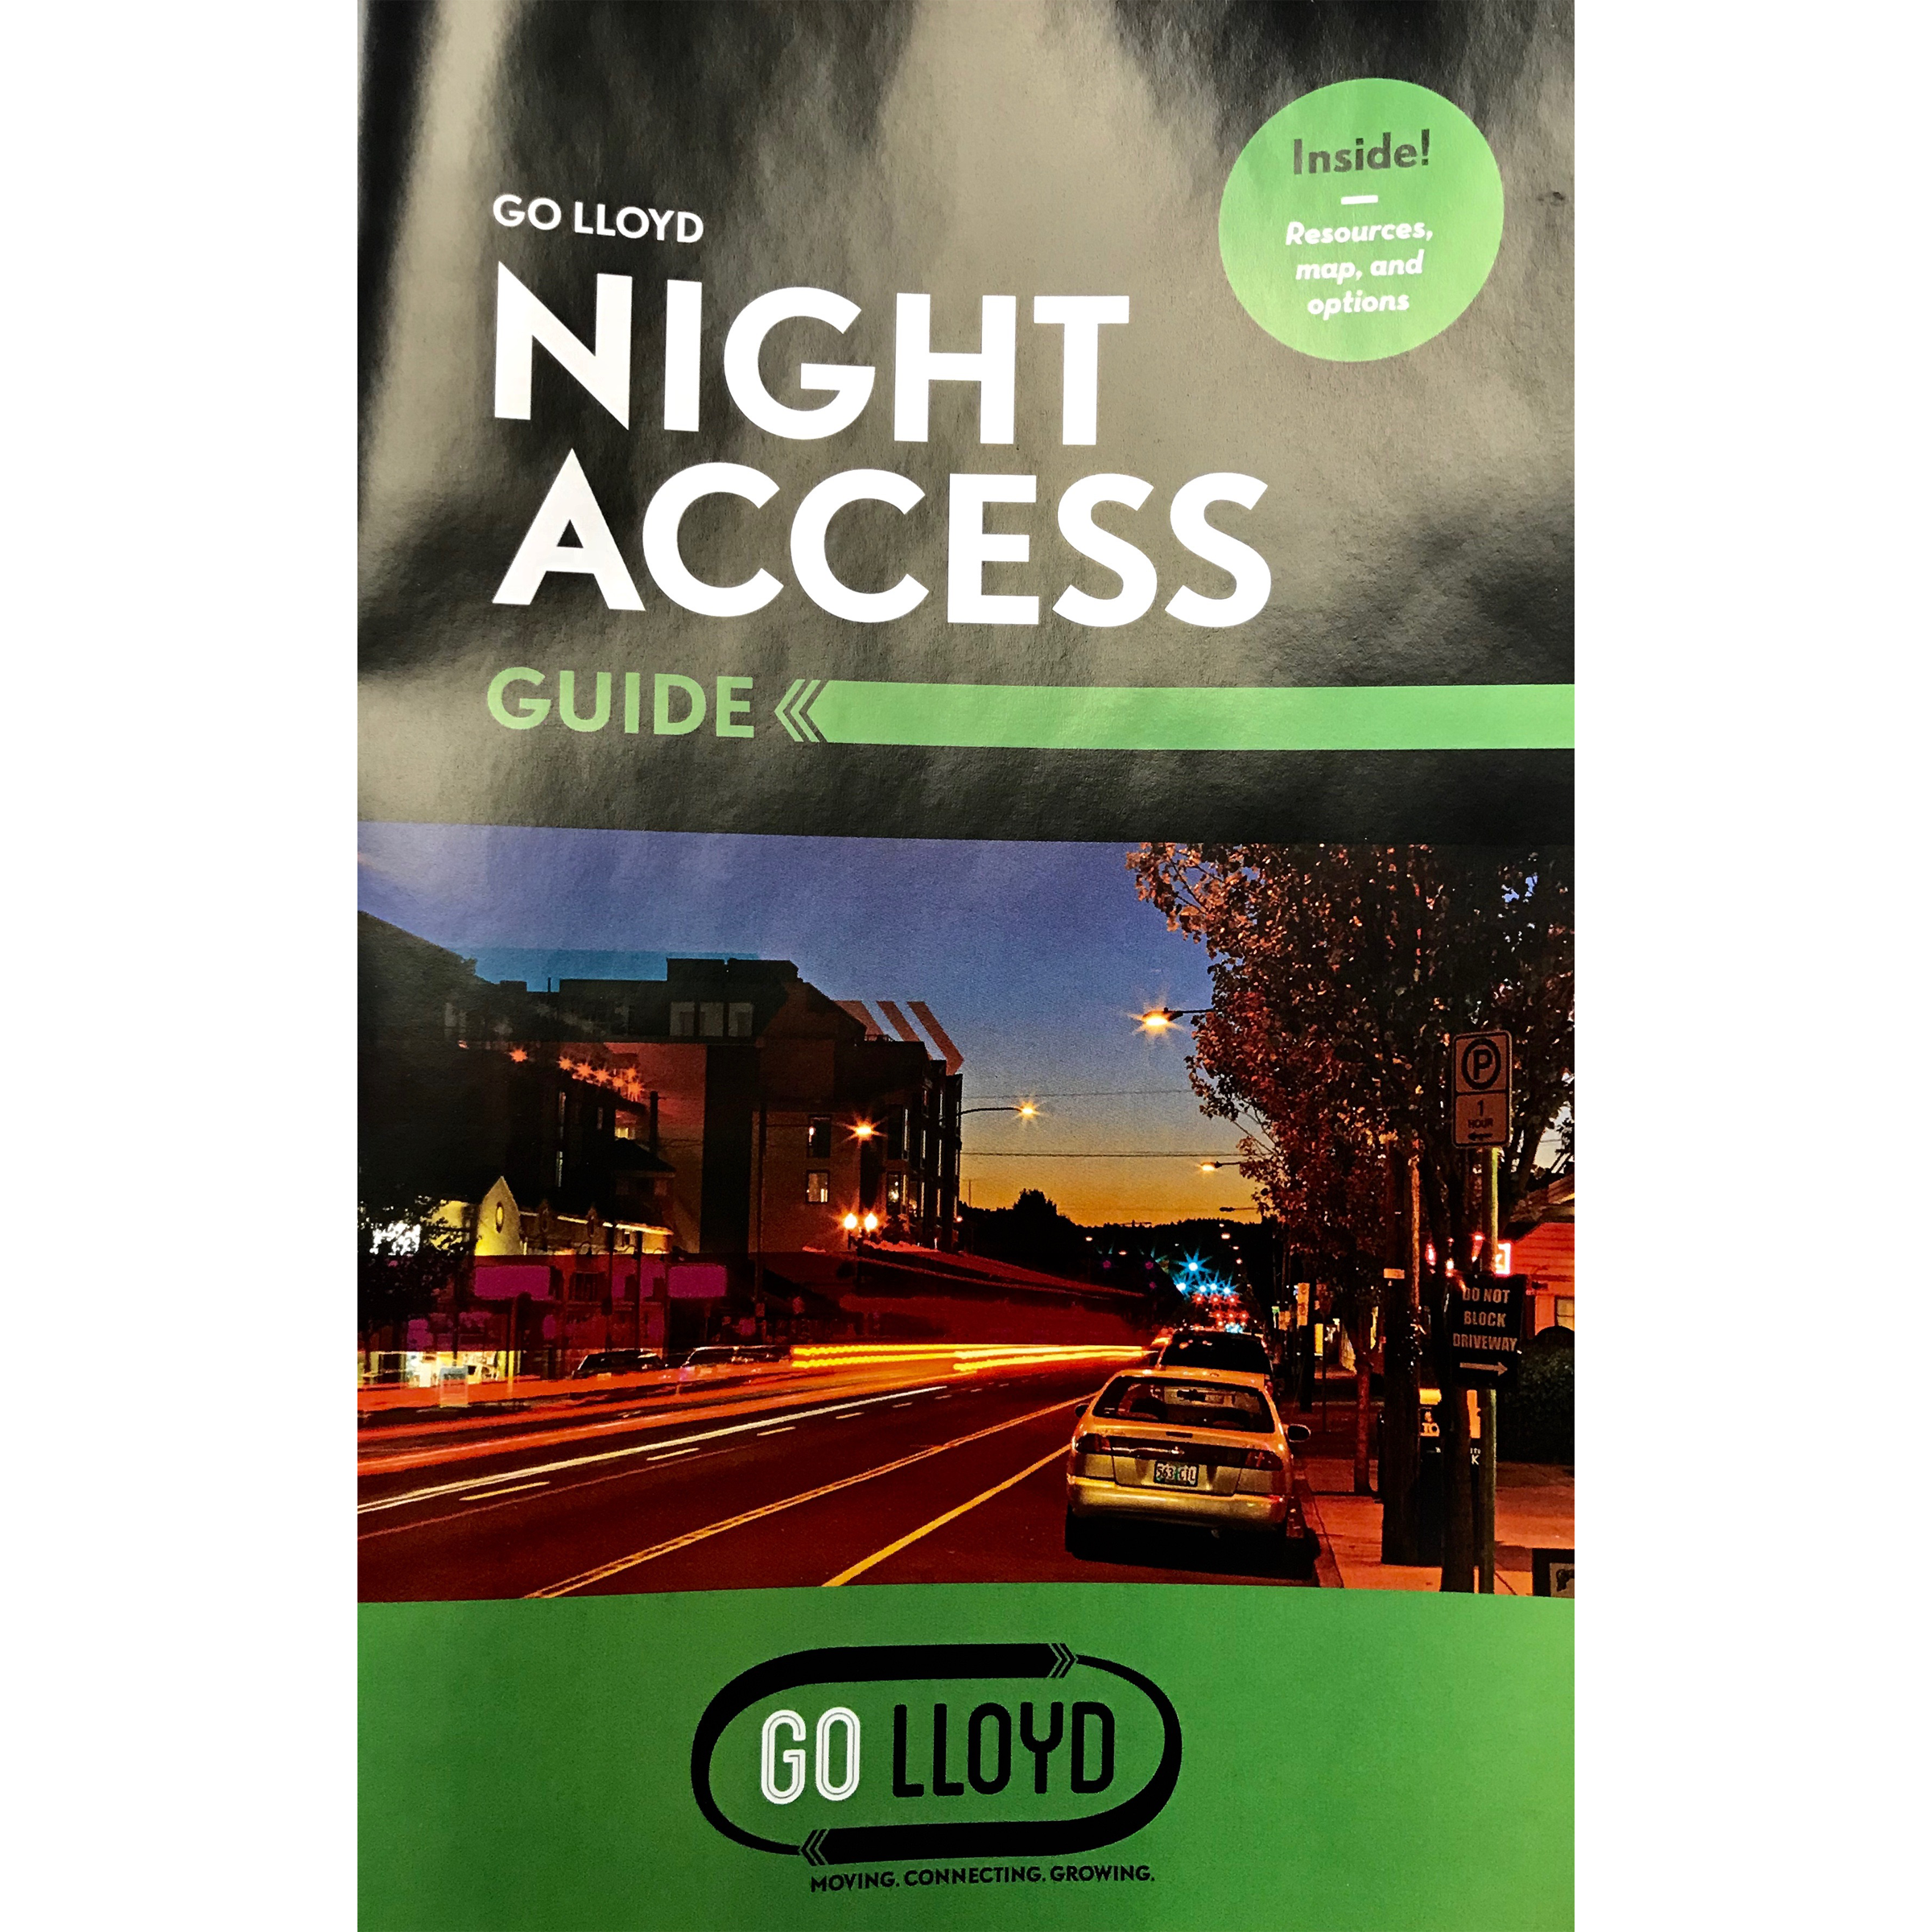 Night Access Guide